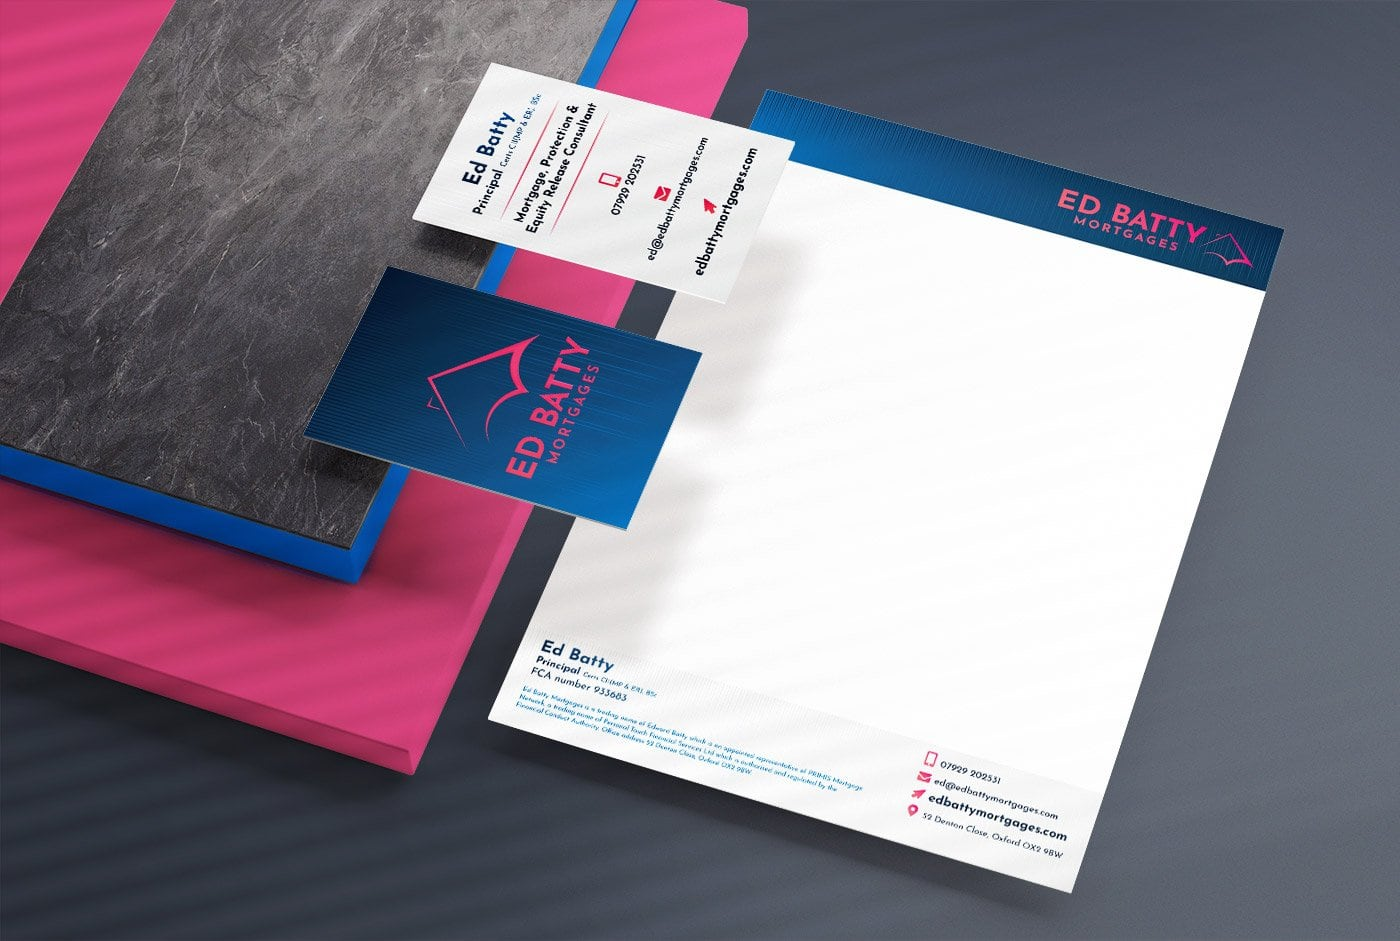 Ed Batty Mortgage Branding Stationery Design & Branding